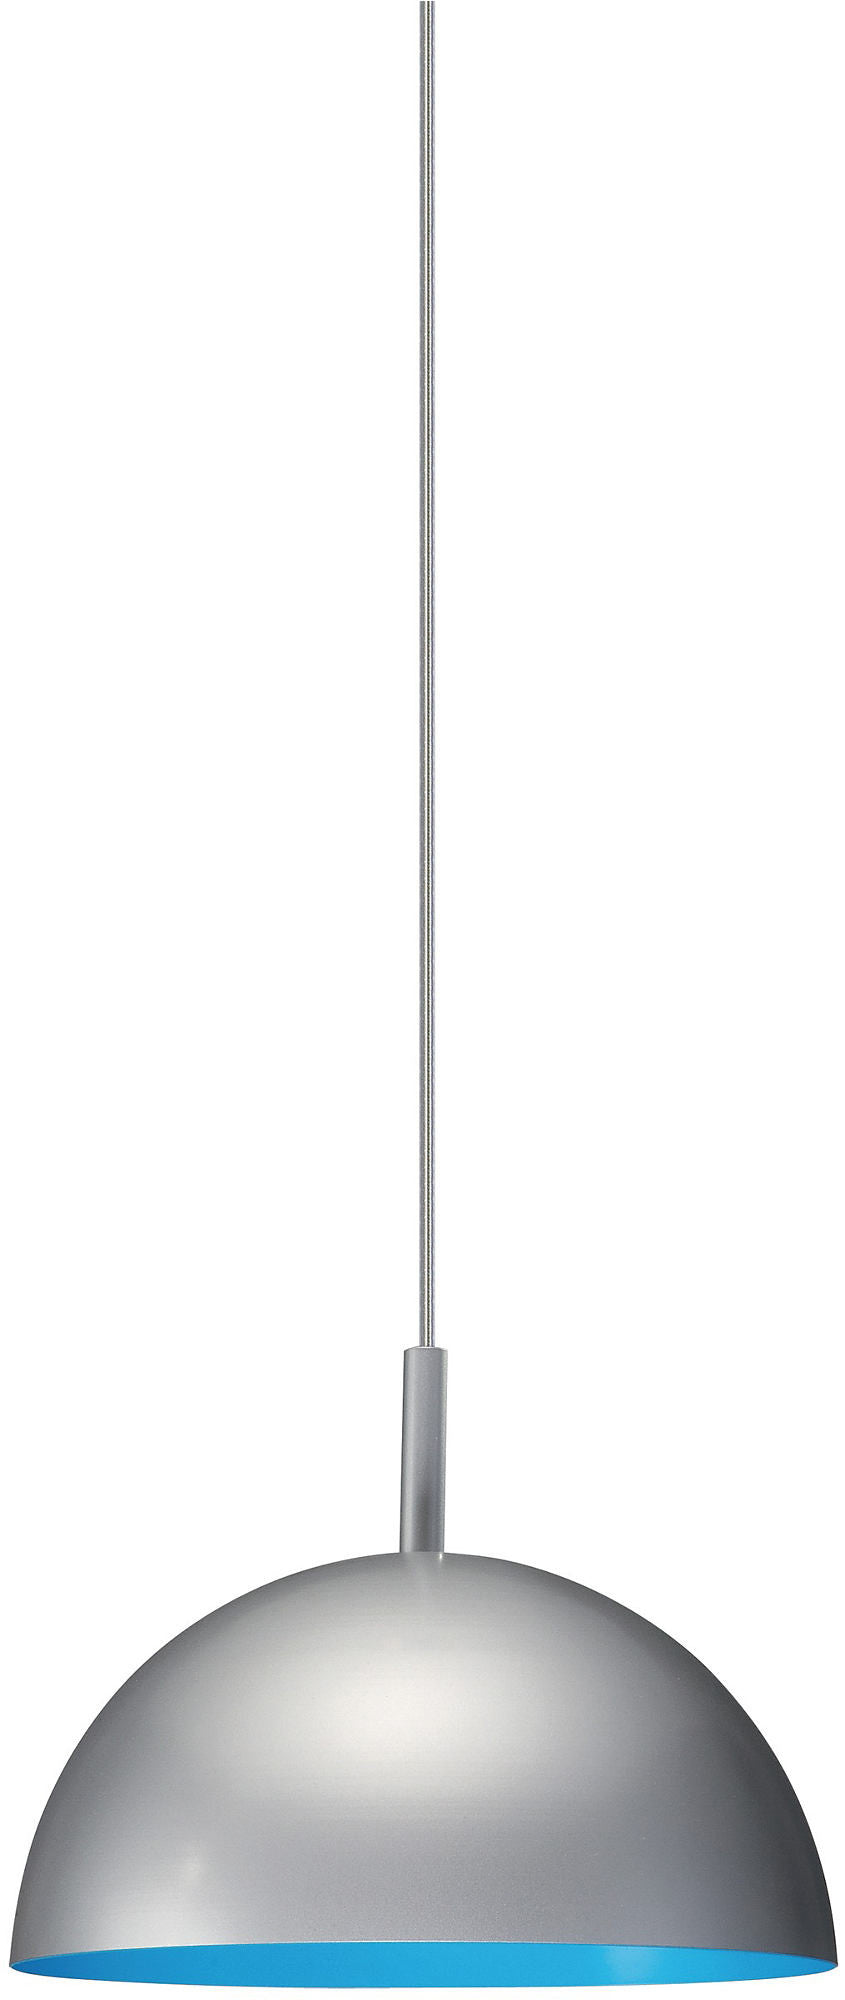 Philips Roomstylers Suspension Light (Adjustable Height)